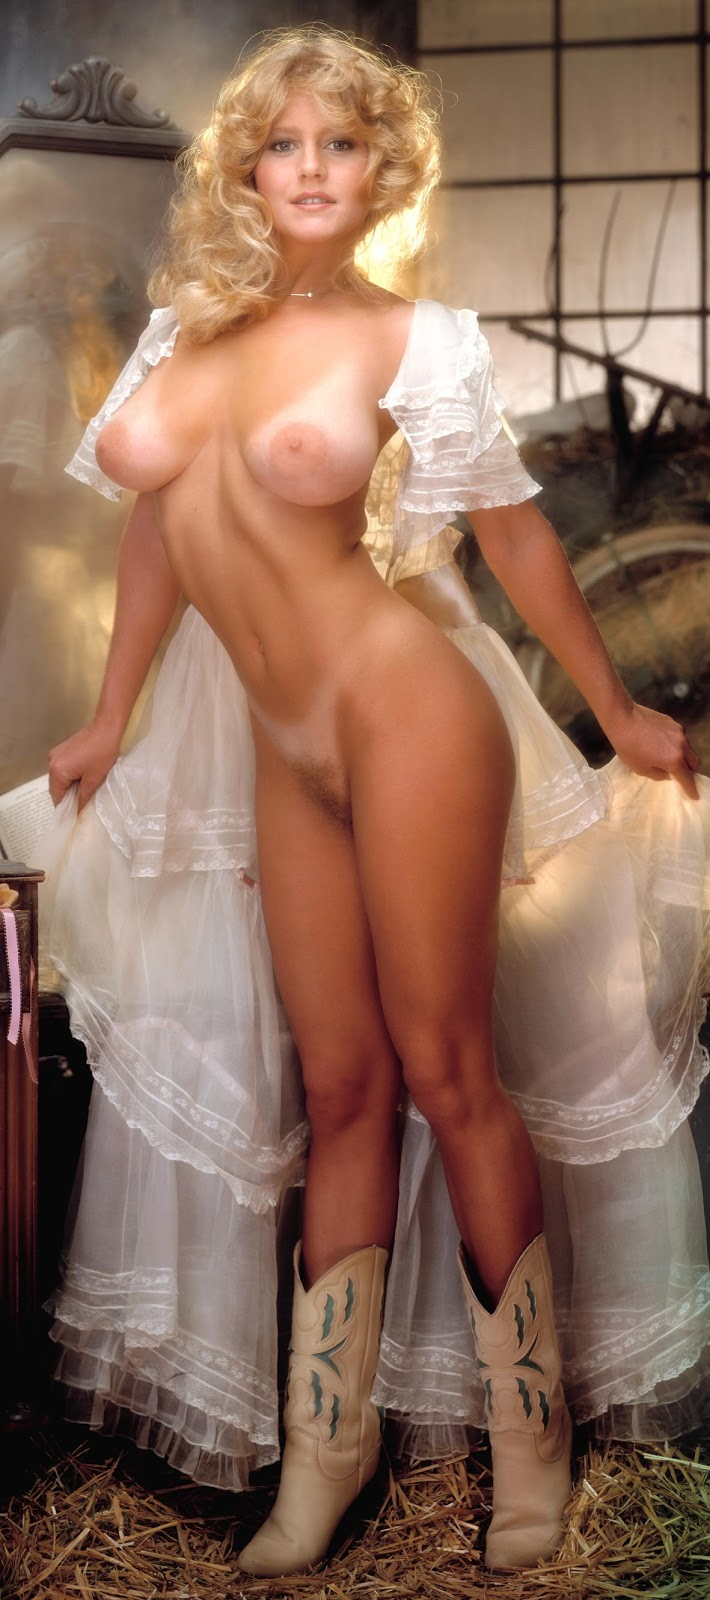 Linda day george nude, canadian bangladeshi hot babe